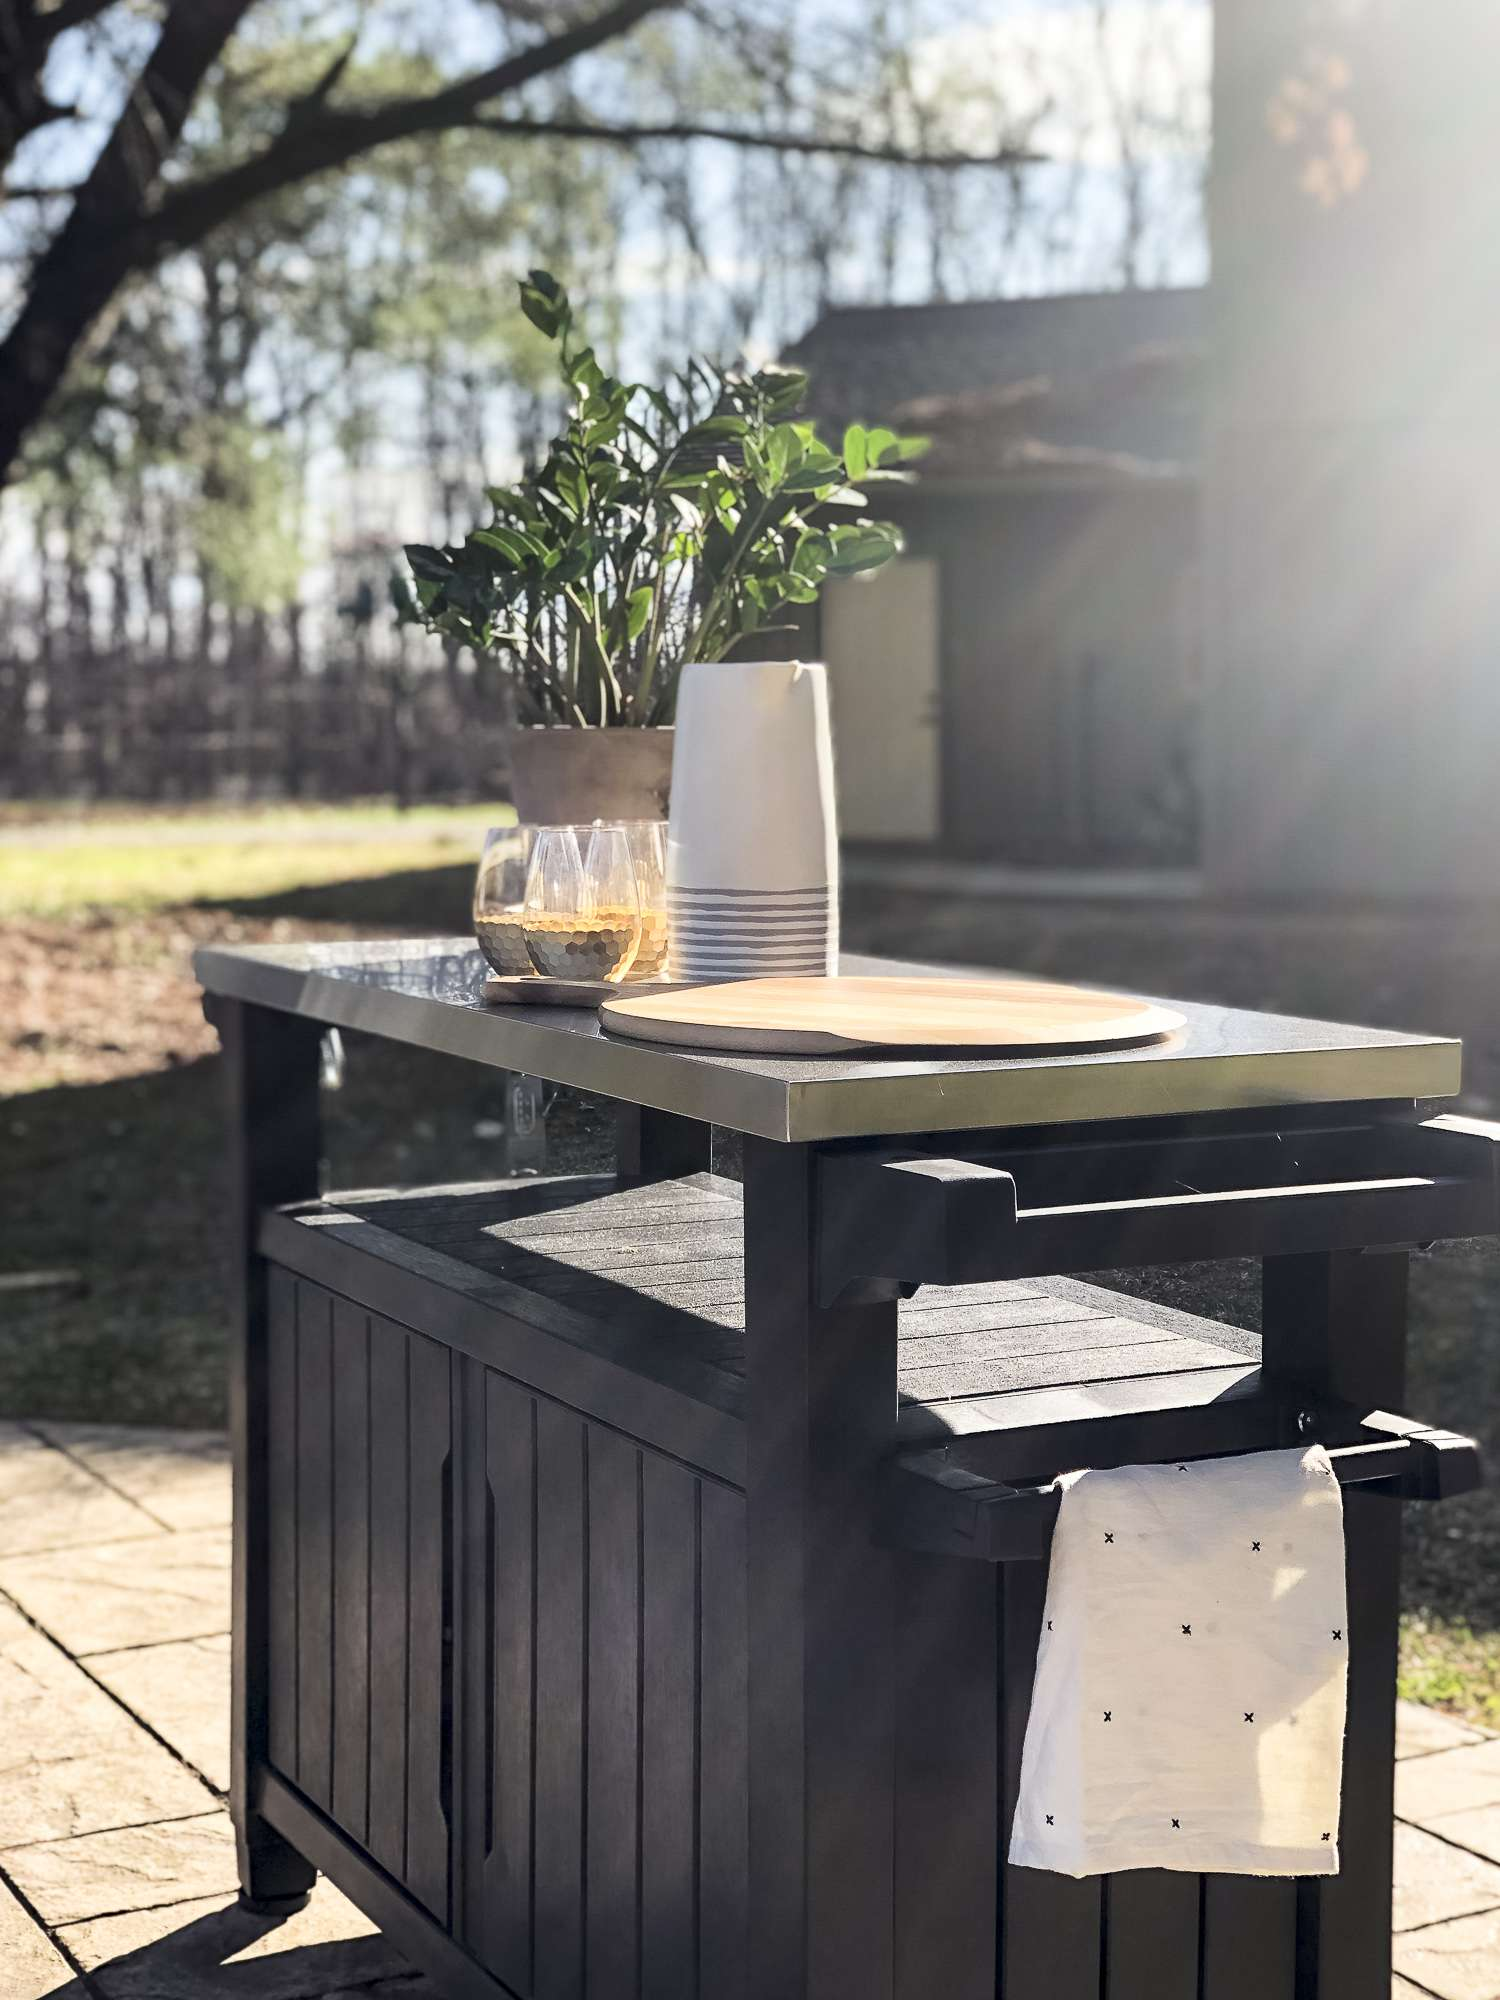 Are you excited for outdoor entertaining? Today I'm sharing my stamped concrete fire pit design plan as I gear up for the warm weather season! #fromhousetohaven #stampedconcrete #patiodesign